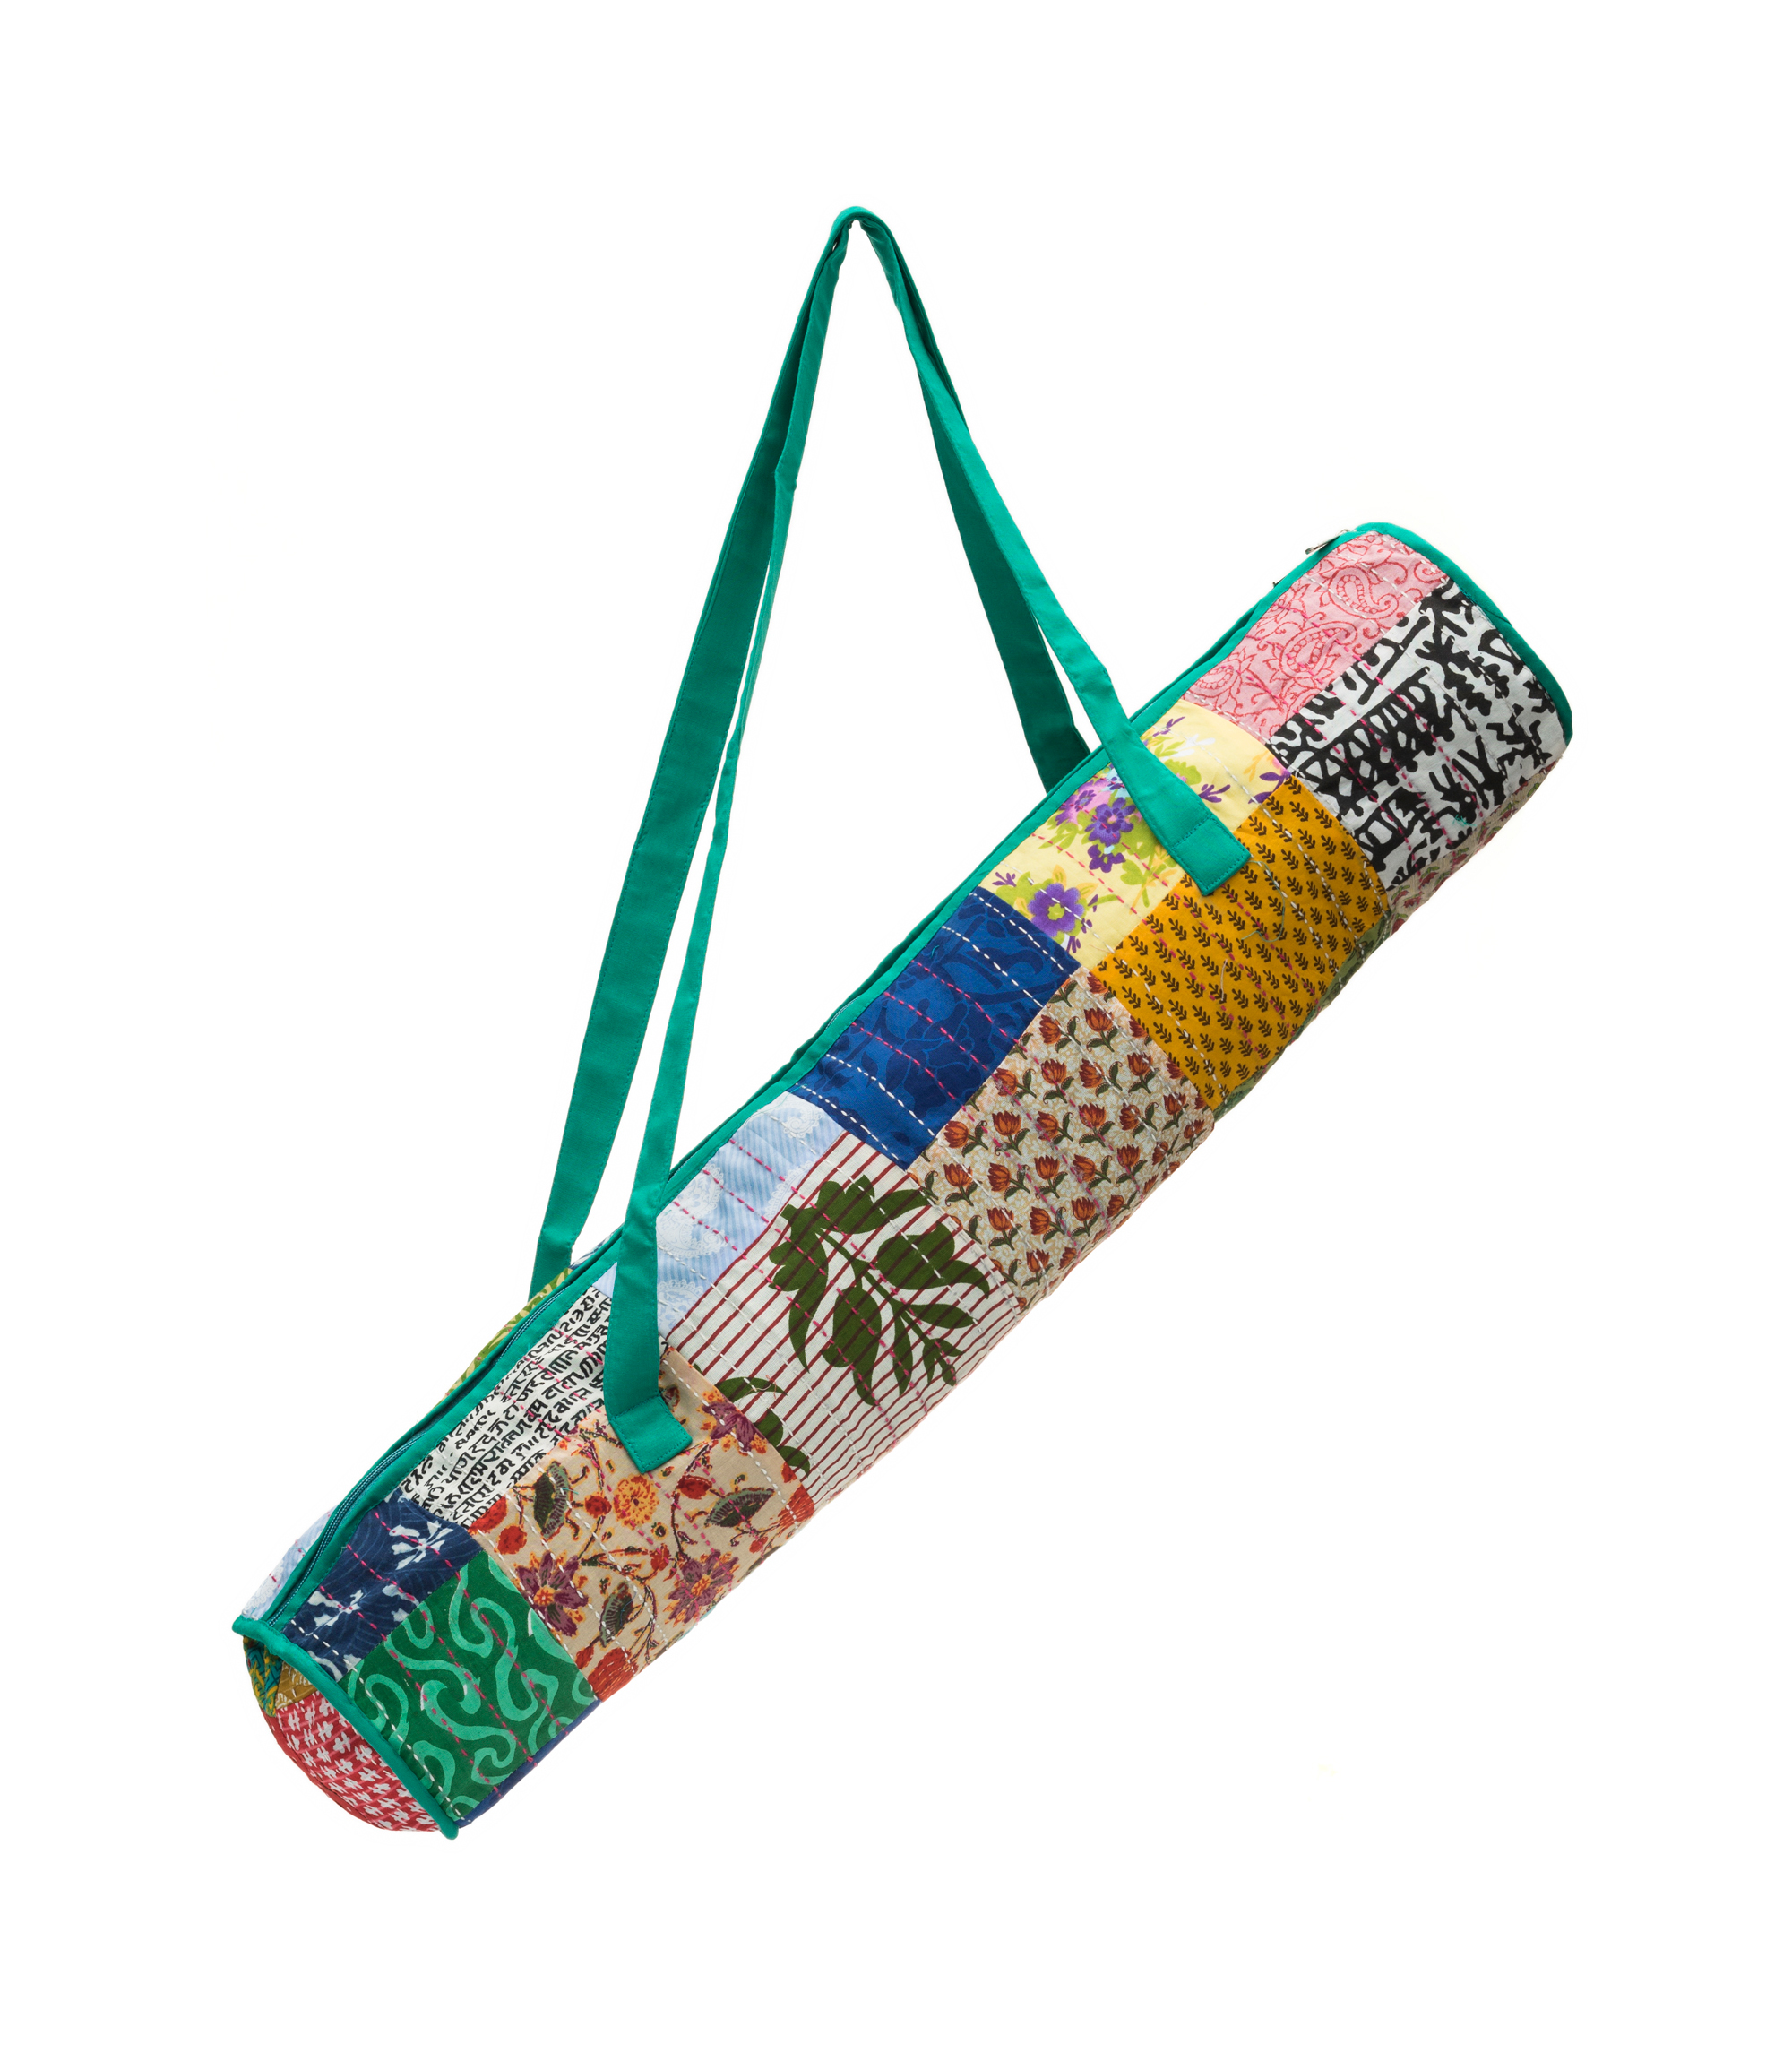 Handcrafted yoga mat bag featuring a beautiful, block printed patchwork with teal accents and colorful kantha stitching.